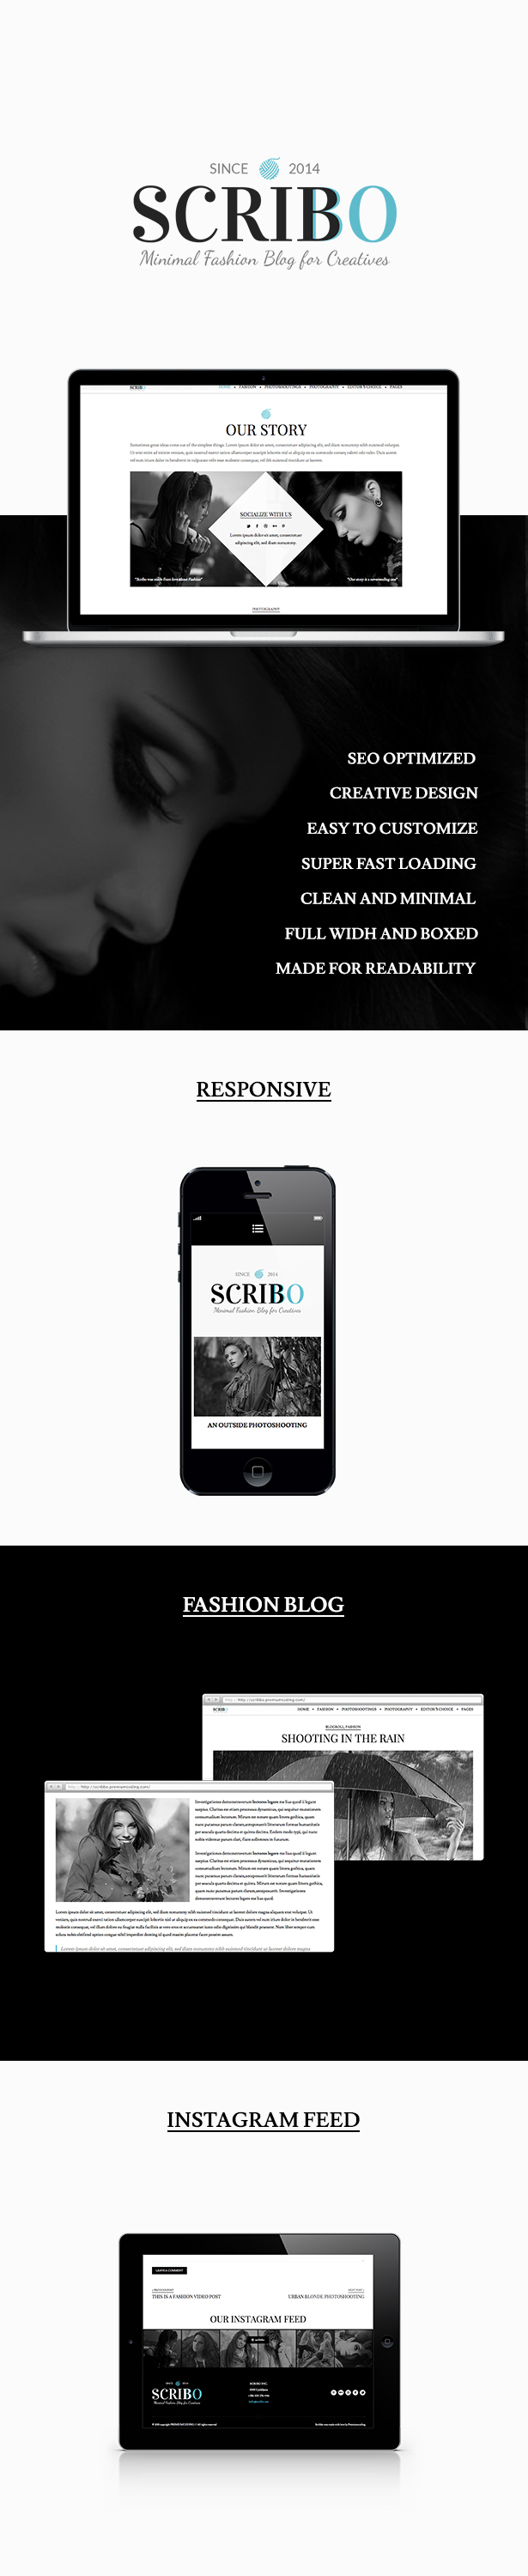 Scribbo - Minimal Elegant Fashion WordPress Blog